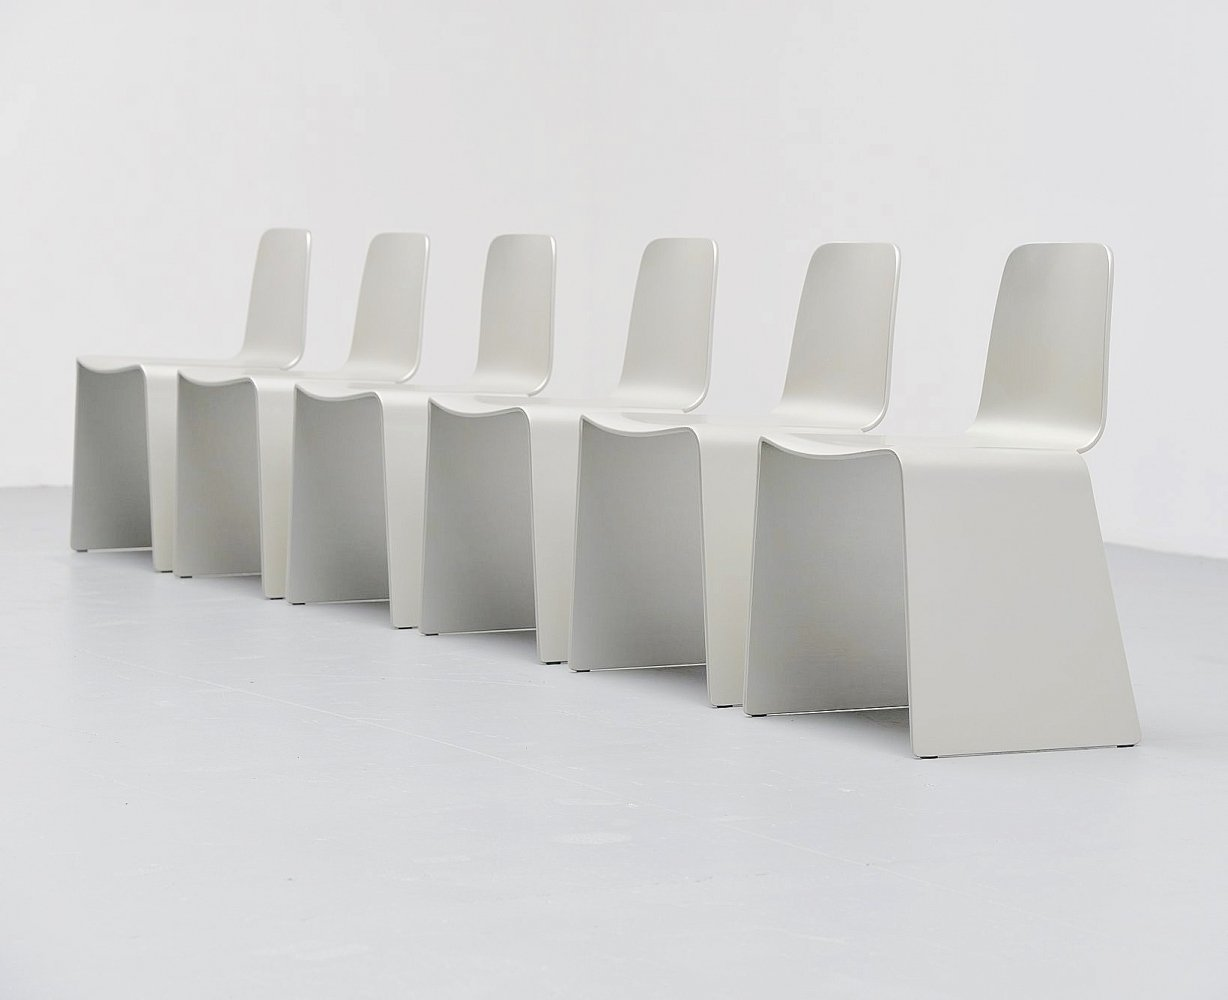 Peter Karpf nxt dining chairs by Voxia, Denmark 1991